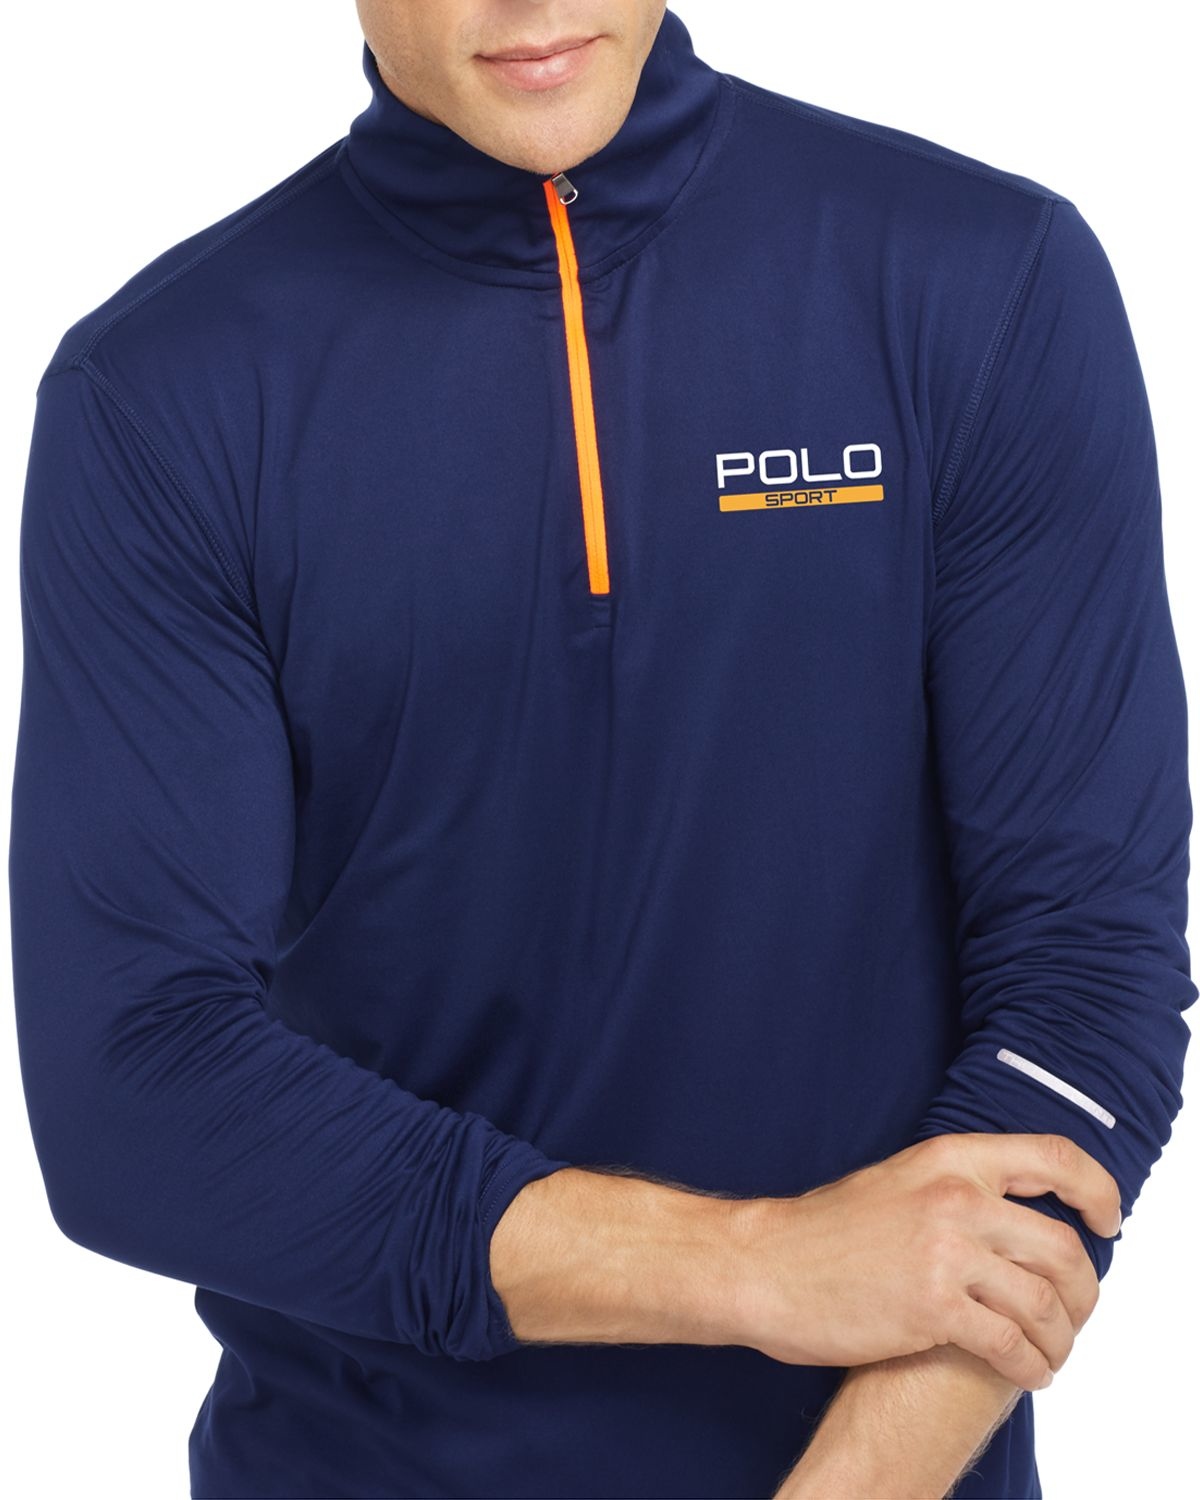 ralph lauren polo sport stretch jersey pullover in blue. Black Bedroom Furniture Sets. Home Design Ideas